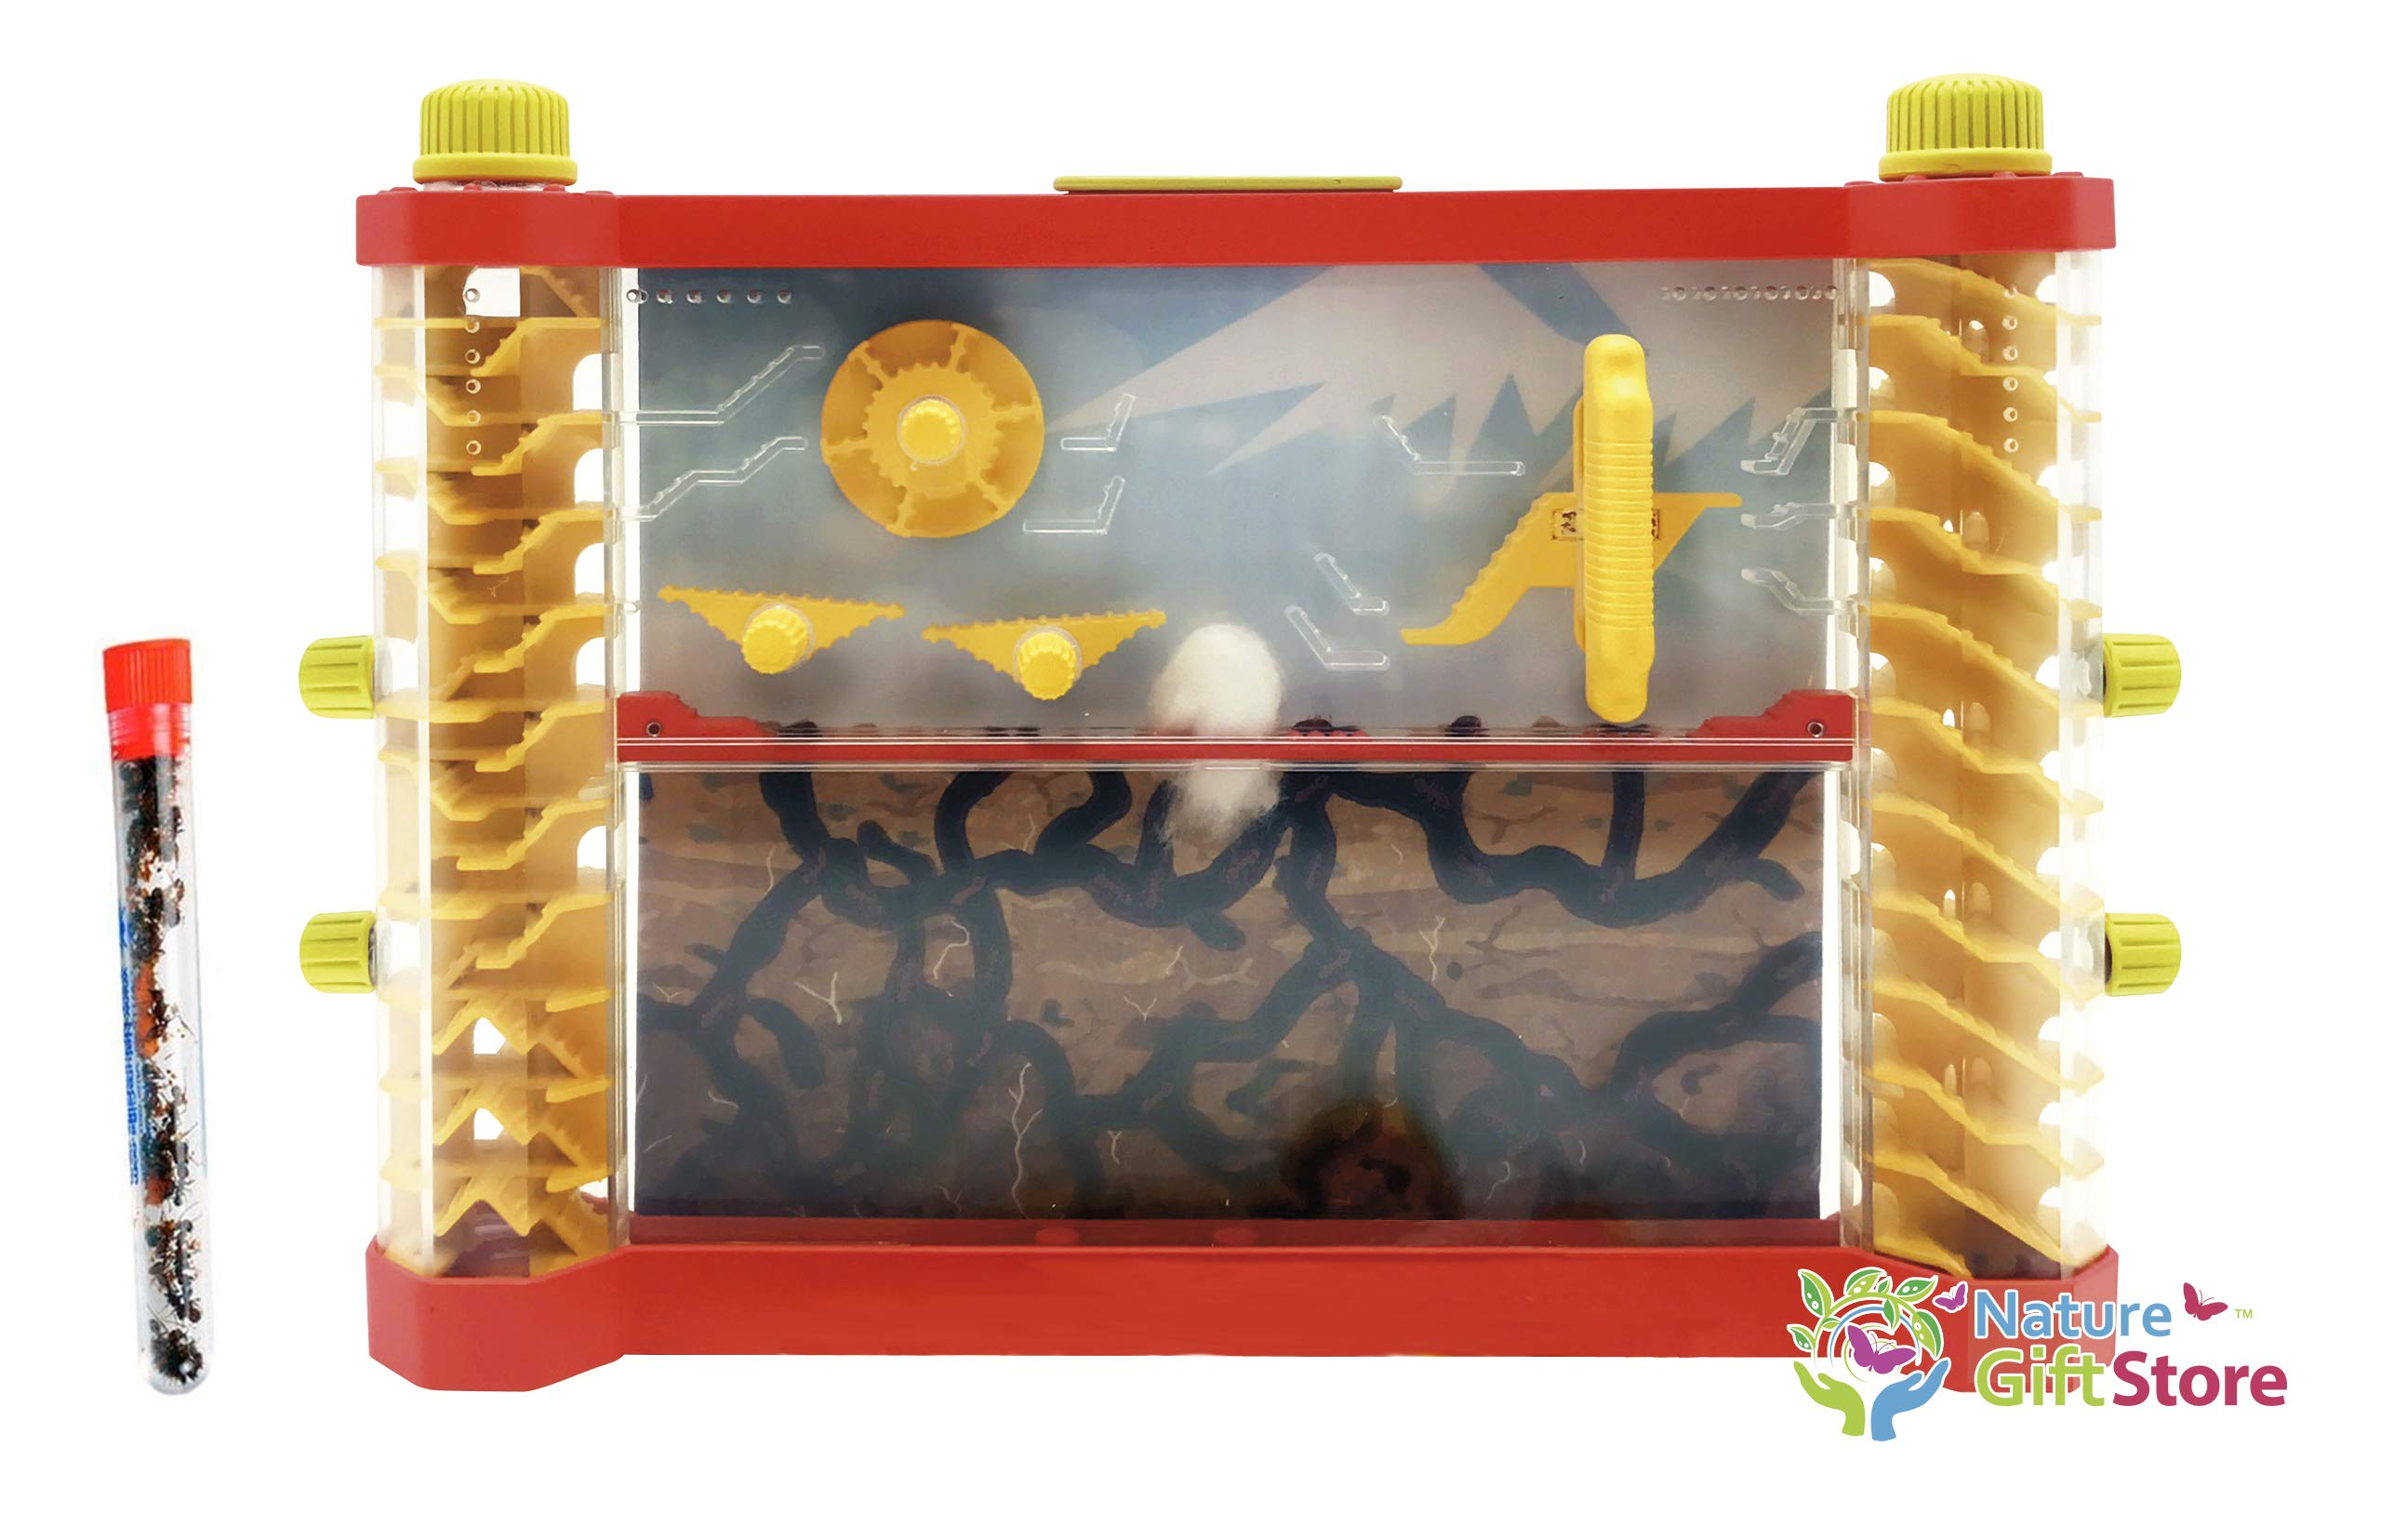 Nature Gift Store Interactive Ant Farm Shipped with Live Ants: See-Saws, Merry-go-Round, Ladders by Nature Gift Store